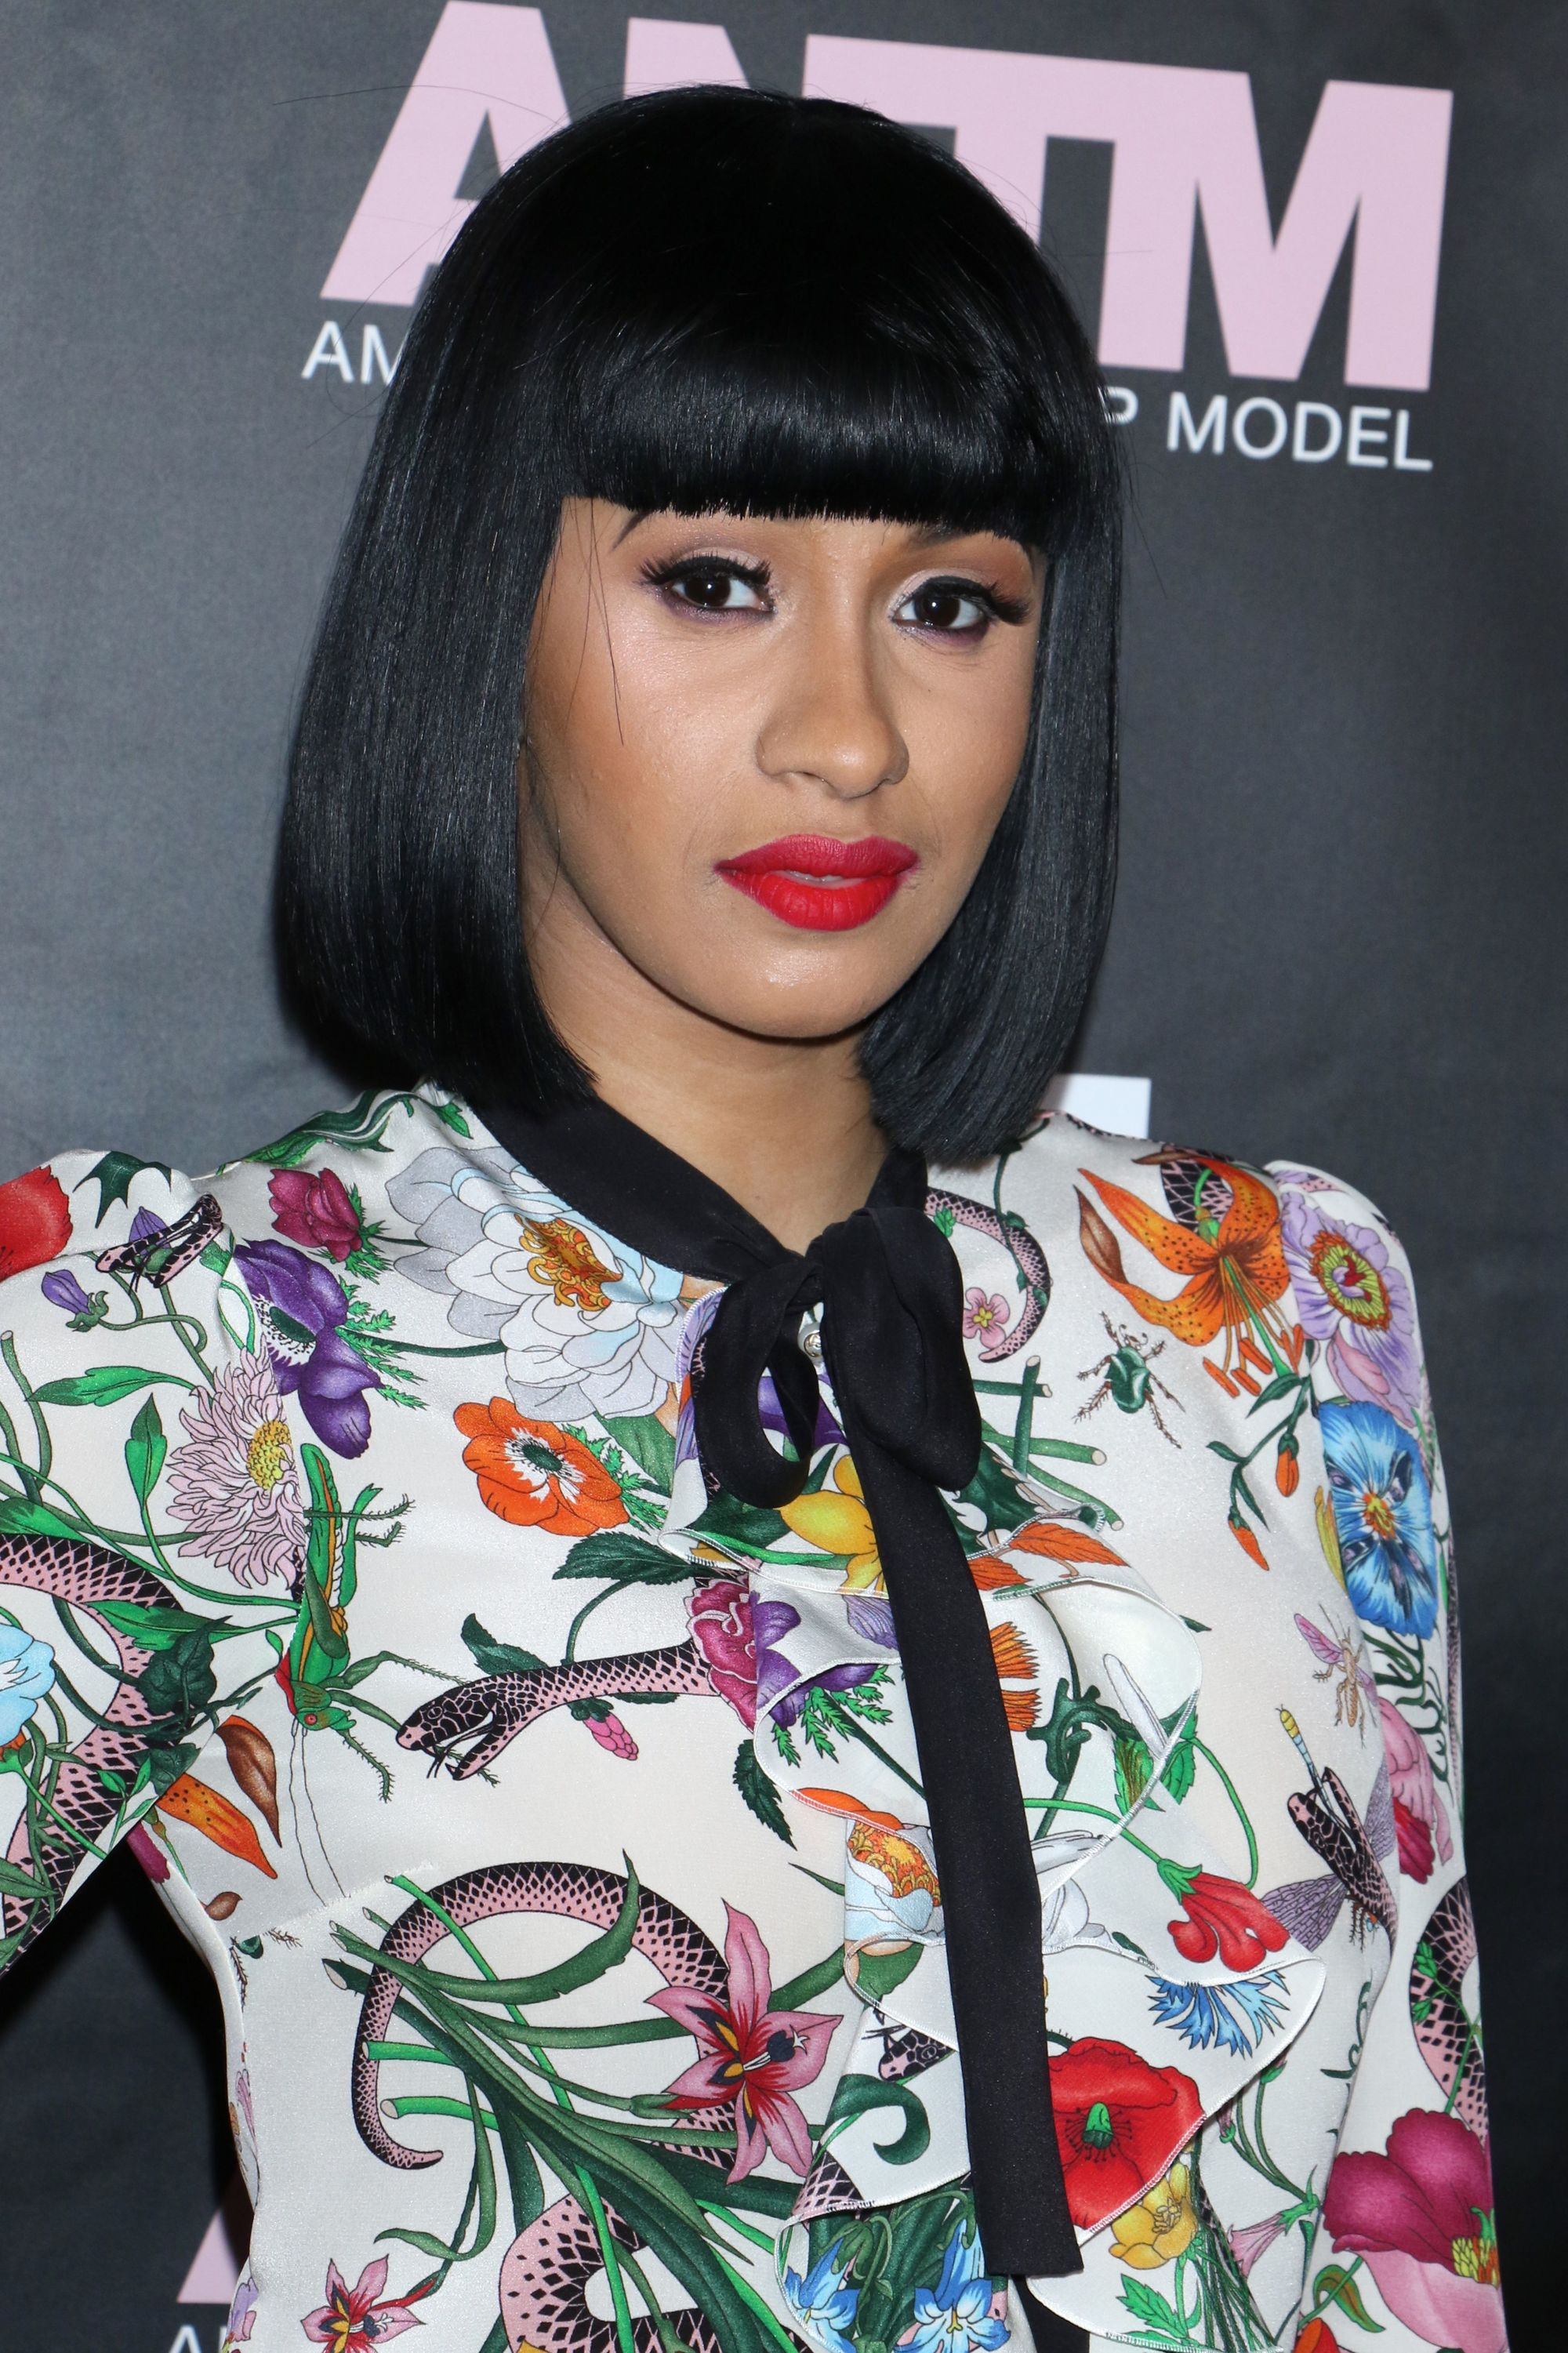 Cardi black bob with full bangs while wearing floral blouse